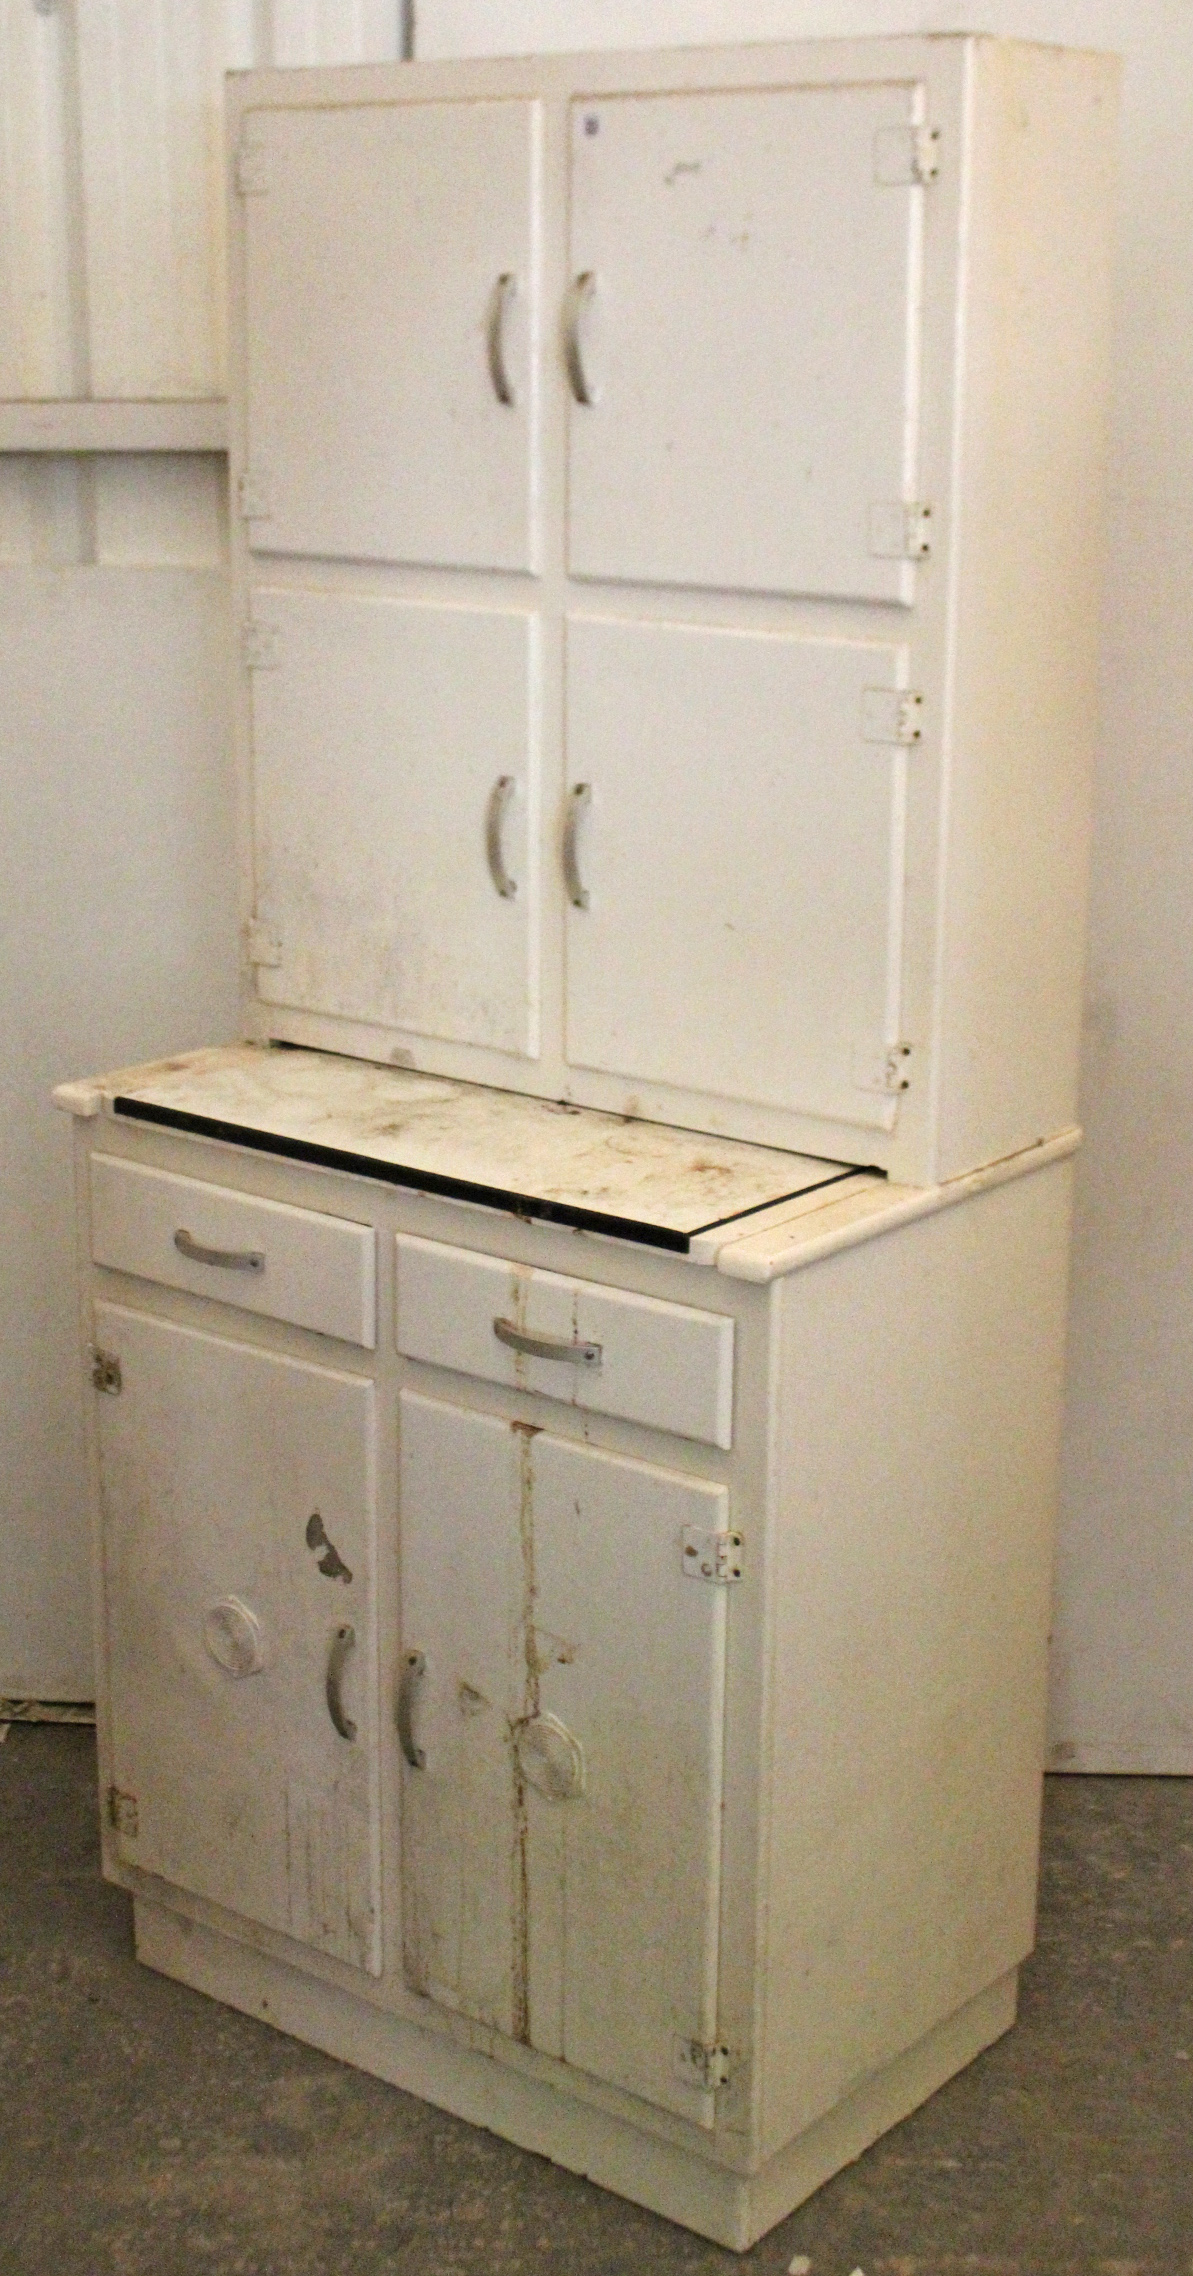 Lot 33 - A mid-20th century white painted wooden tall kitchen cabinet, fitted with an arrangement of numerous